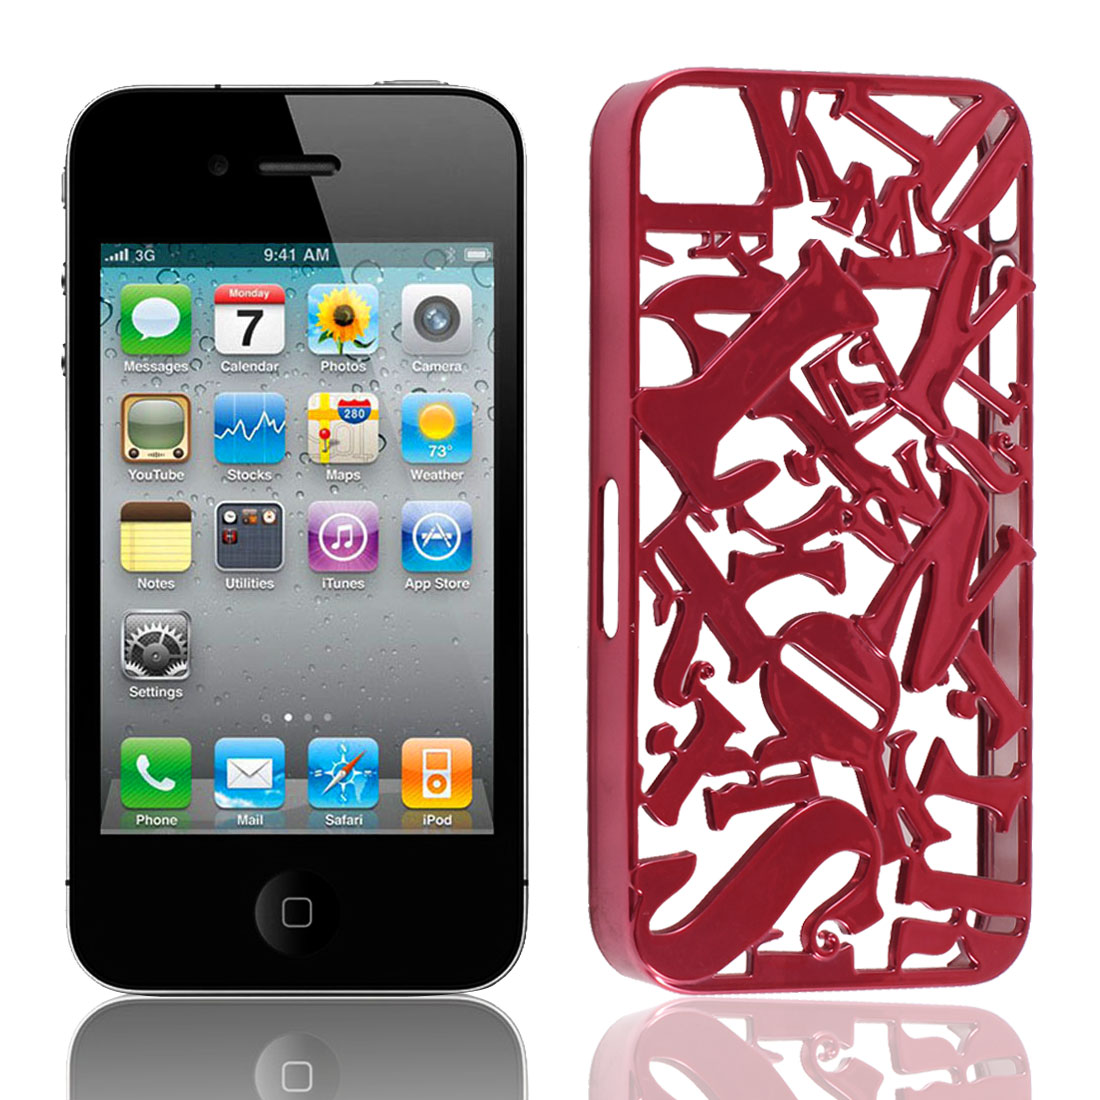 Red Plastic Cutt Off 3D Letter Back Case Cover Shell for iPhone 4 4S 4G 4GS